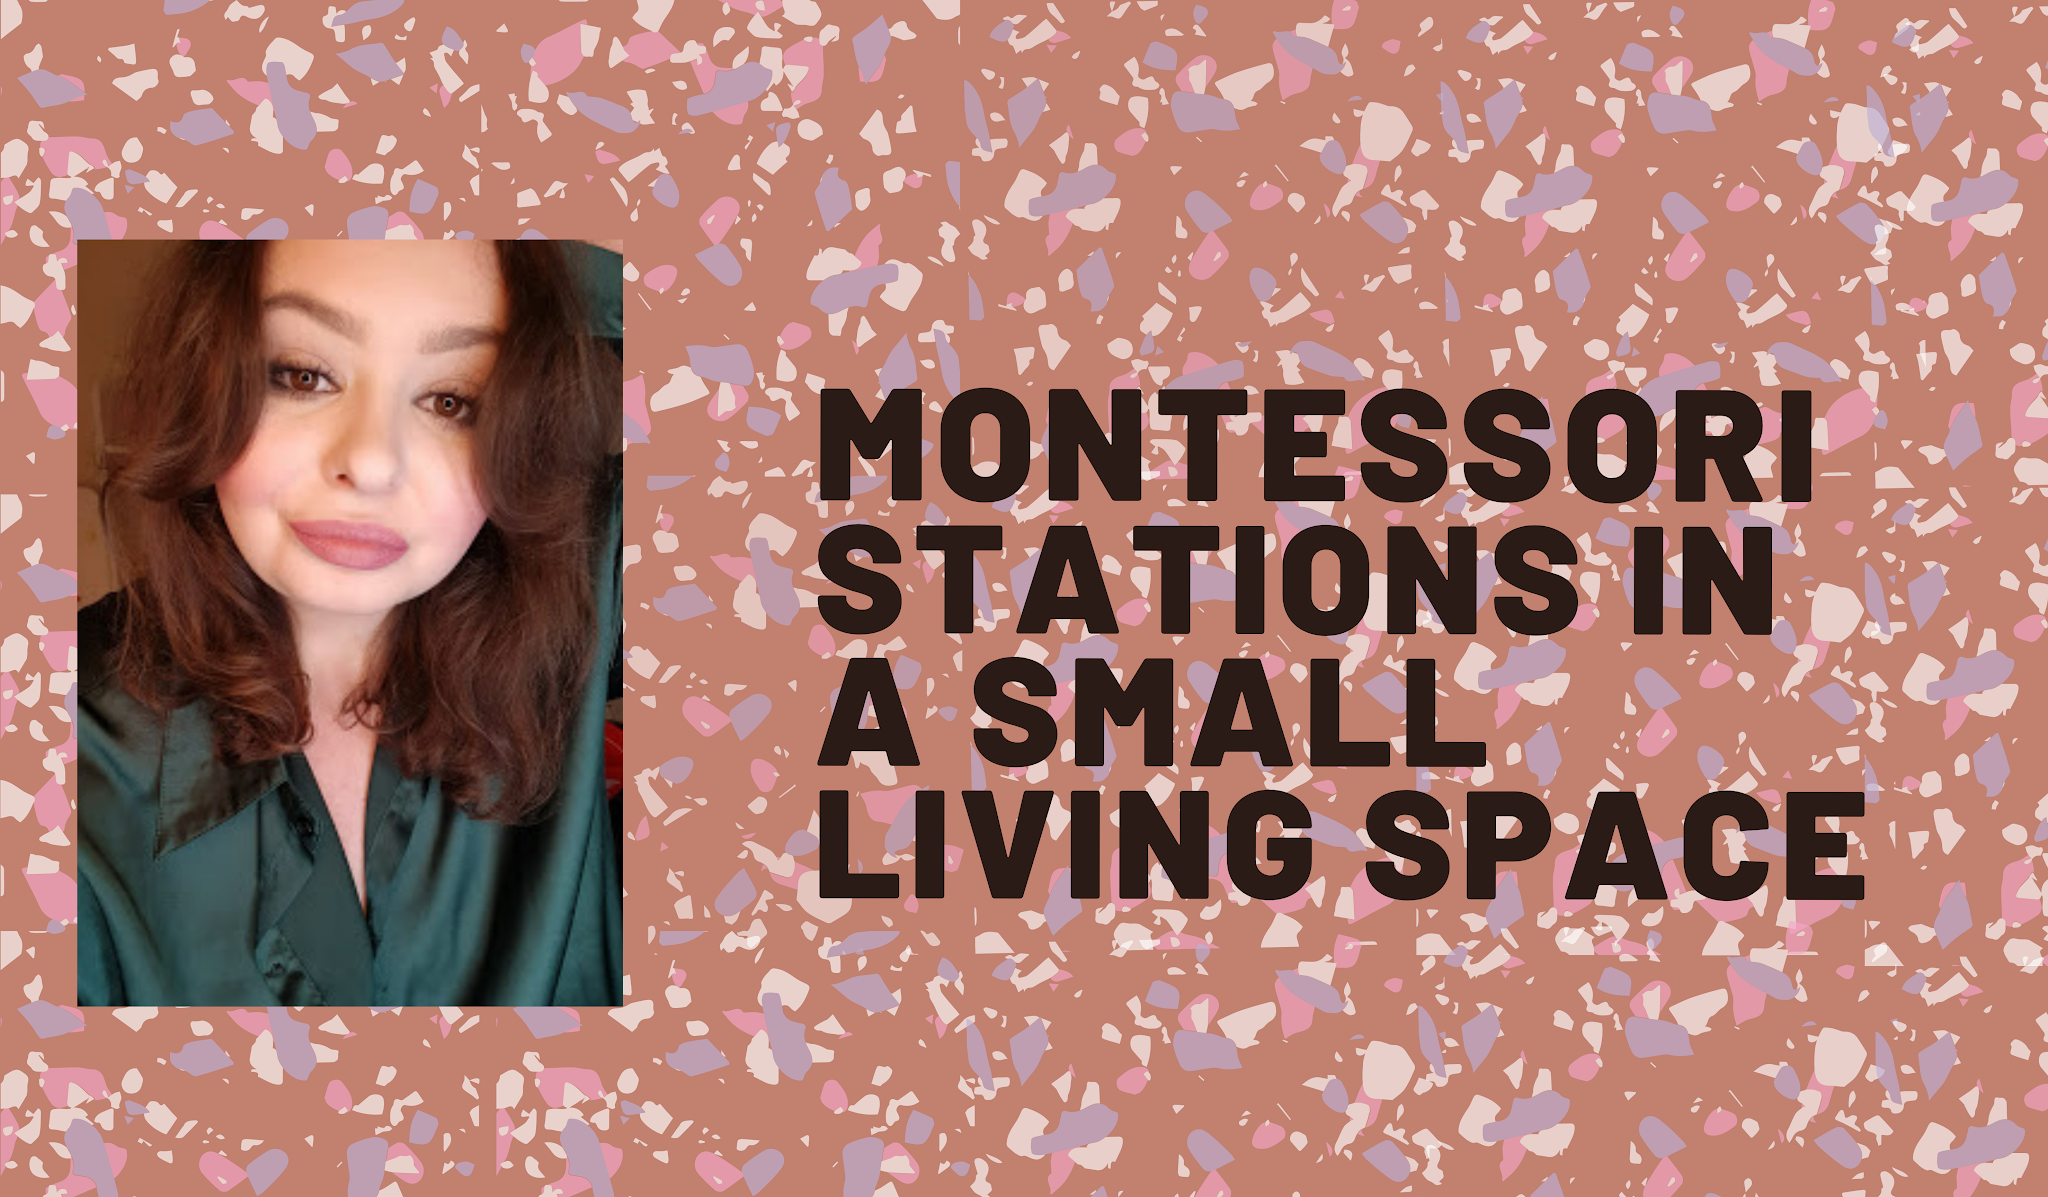 Montessori Practical Life: snack and self-care stations in a small space and on a budget. What are practical life skills?